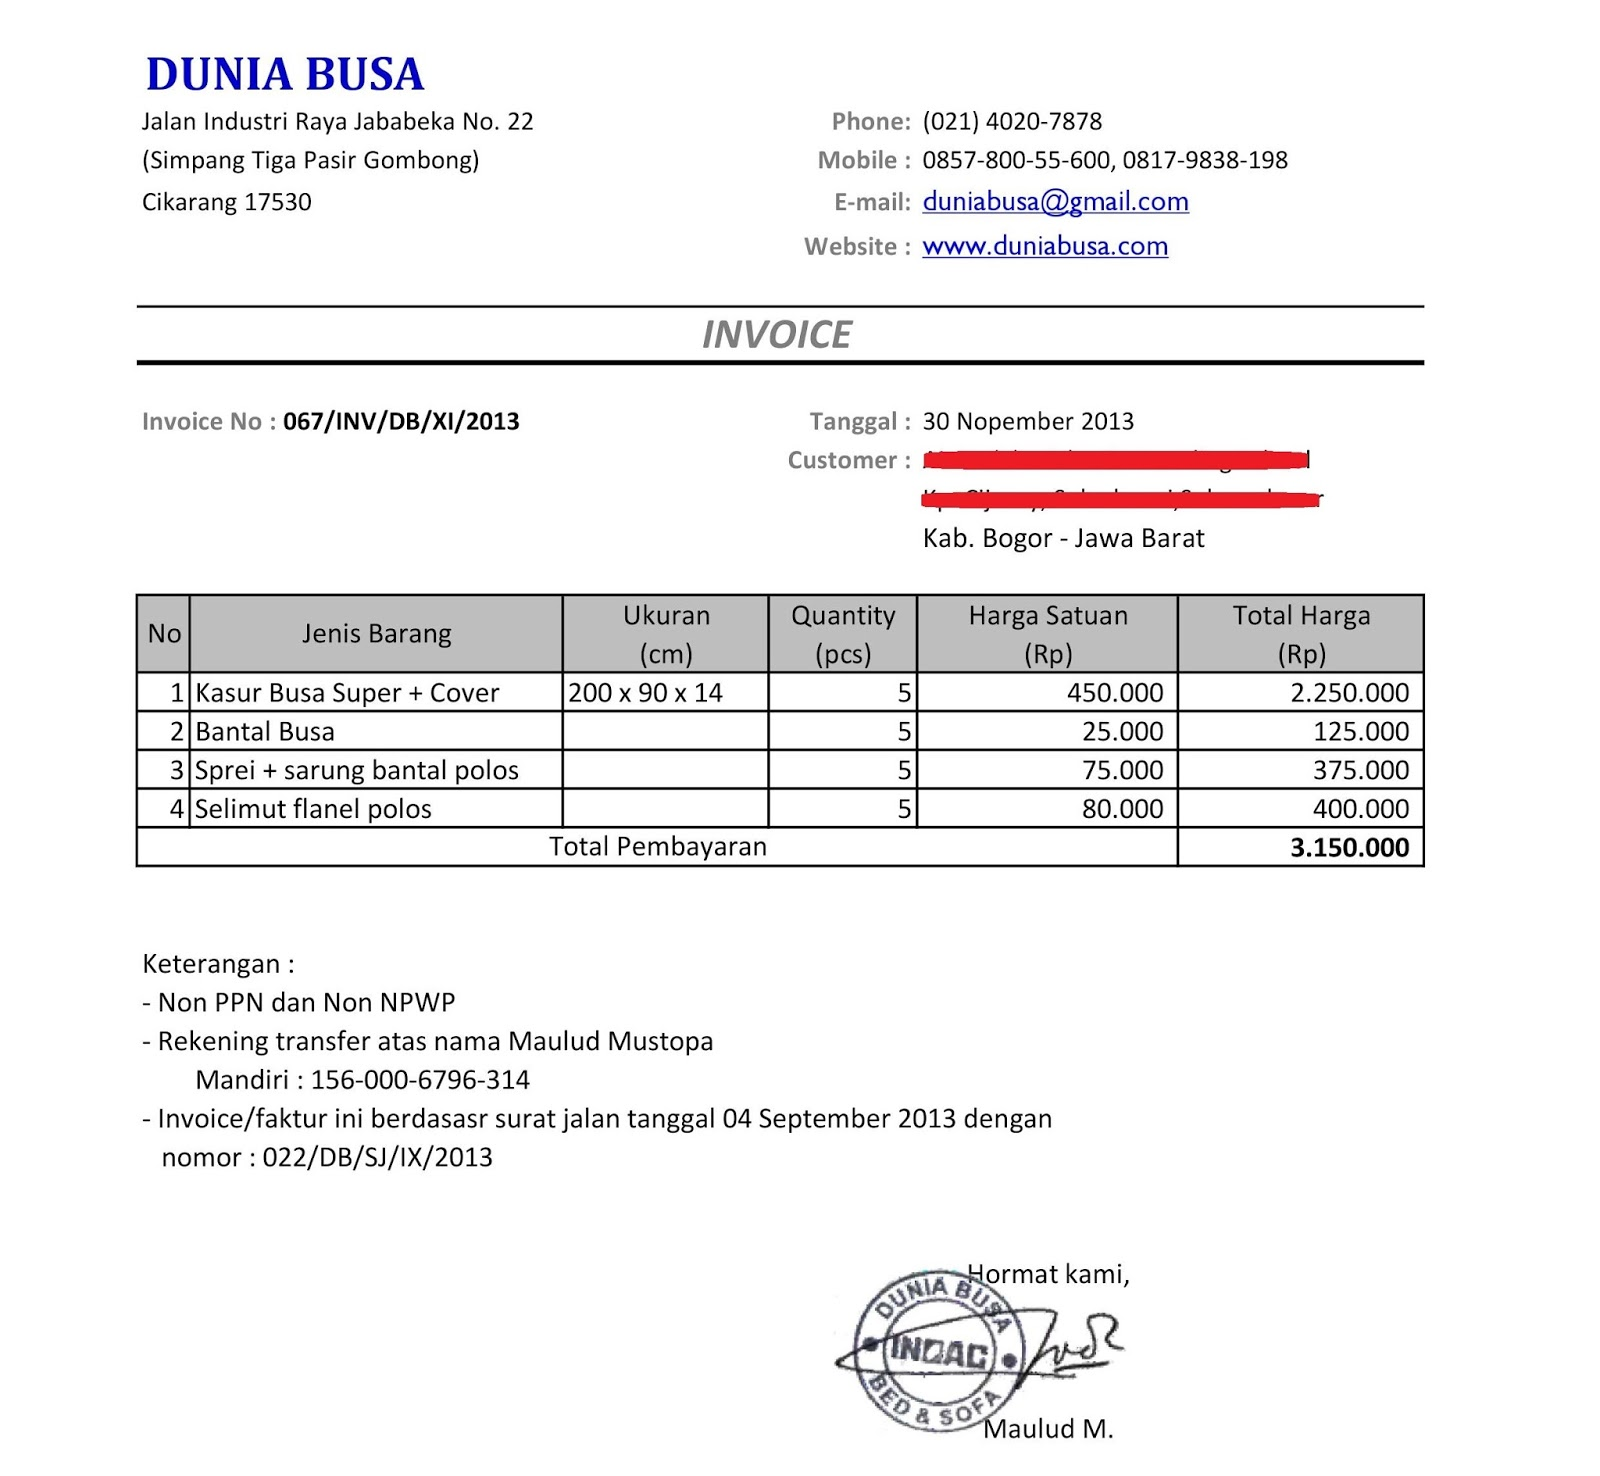 Ultrablogus  Pretty Free Invoice Online  Create Invoice Online  Invoice Template  With Goodlooking Contoh Format Invoice Atau Surat Tagihan  Brankas Arsip  Free Invoice Online With Appealing Invoice Header Also How To Find Dealer Invoice Price For A Car In Addition My Invoice Software And Instaform Invoices And Estimates Pro As Well As Free Invoice Website Additionally Export Commercial Invoice From Sklepco With Ultrablogus  Goodlooking Free Invoice Online  Create Invoice Online  Invoice Template  With Appealing Contoh Format Invoice Atau Surat Tagihan  Brankas Arsip  Free Invoice Online And Pretty Invoice Header Also How To Find Dealer Invoice Price For A Car In Addition My Invoice Software From Sklepco